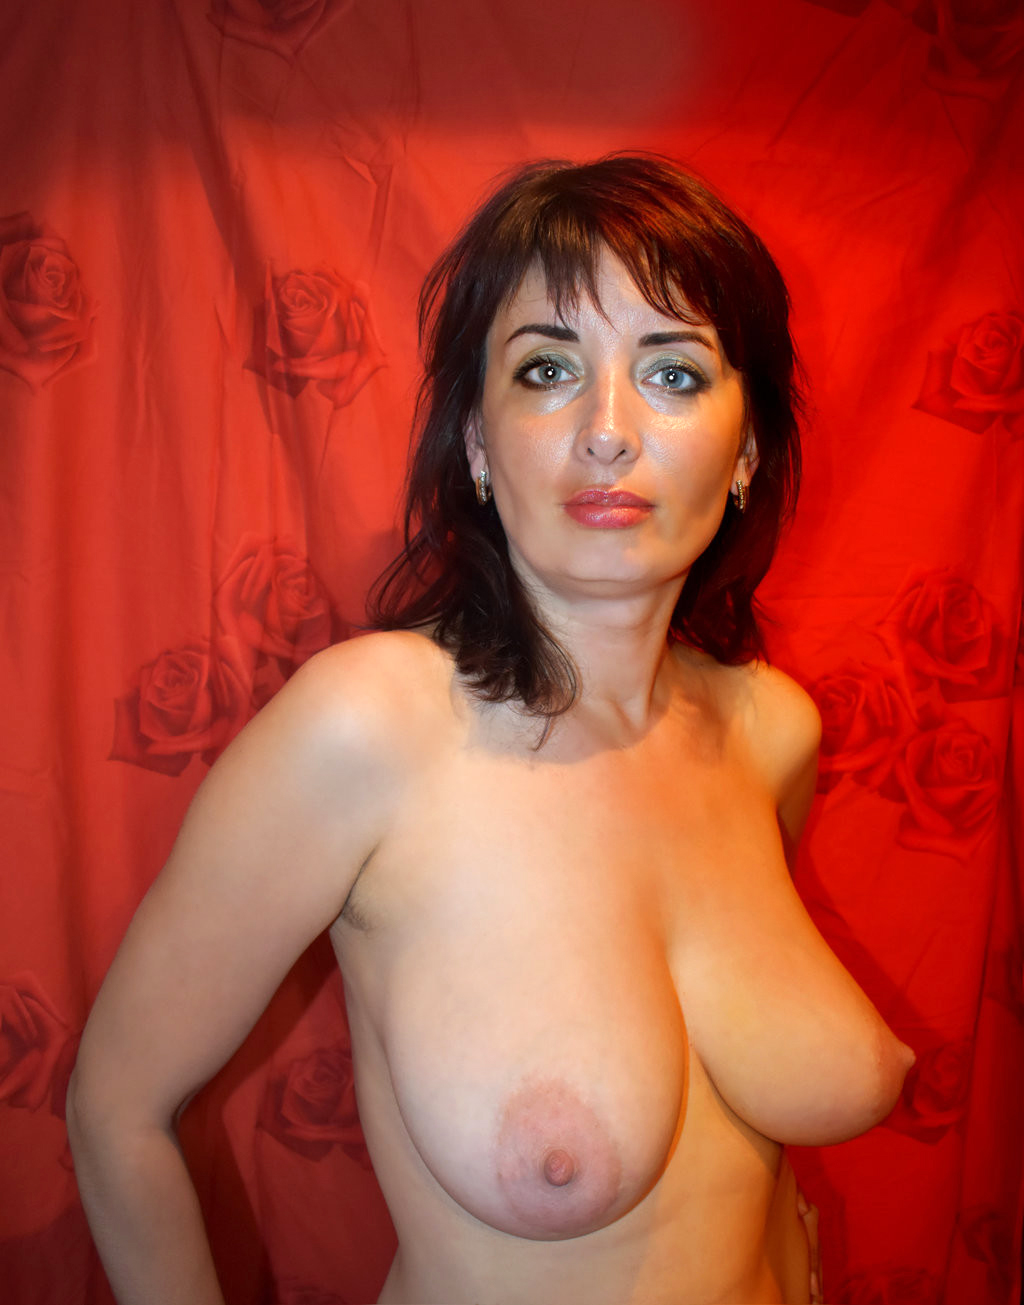 Large tits petite women with Petite Teen